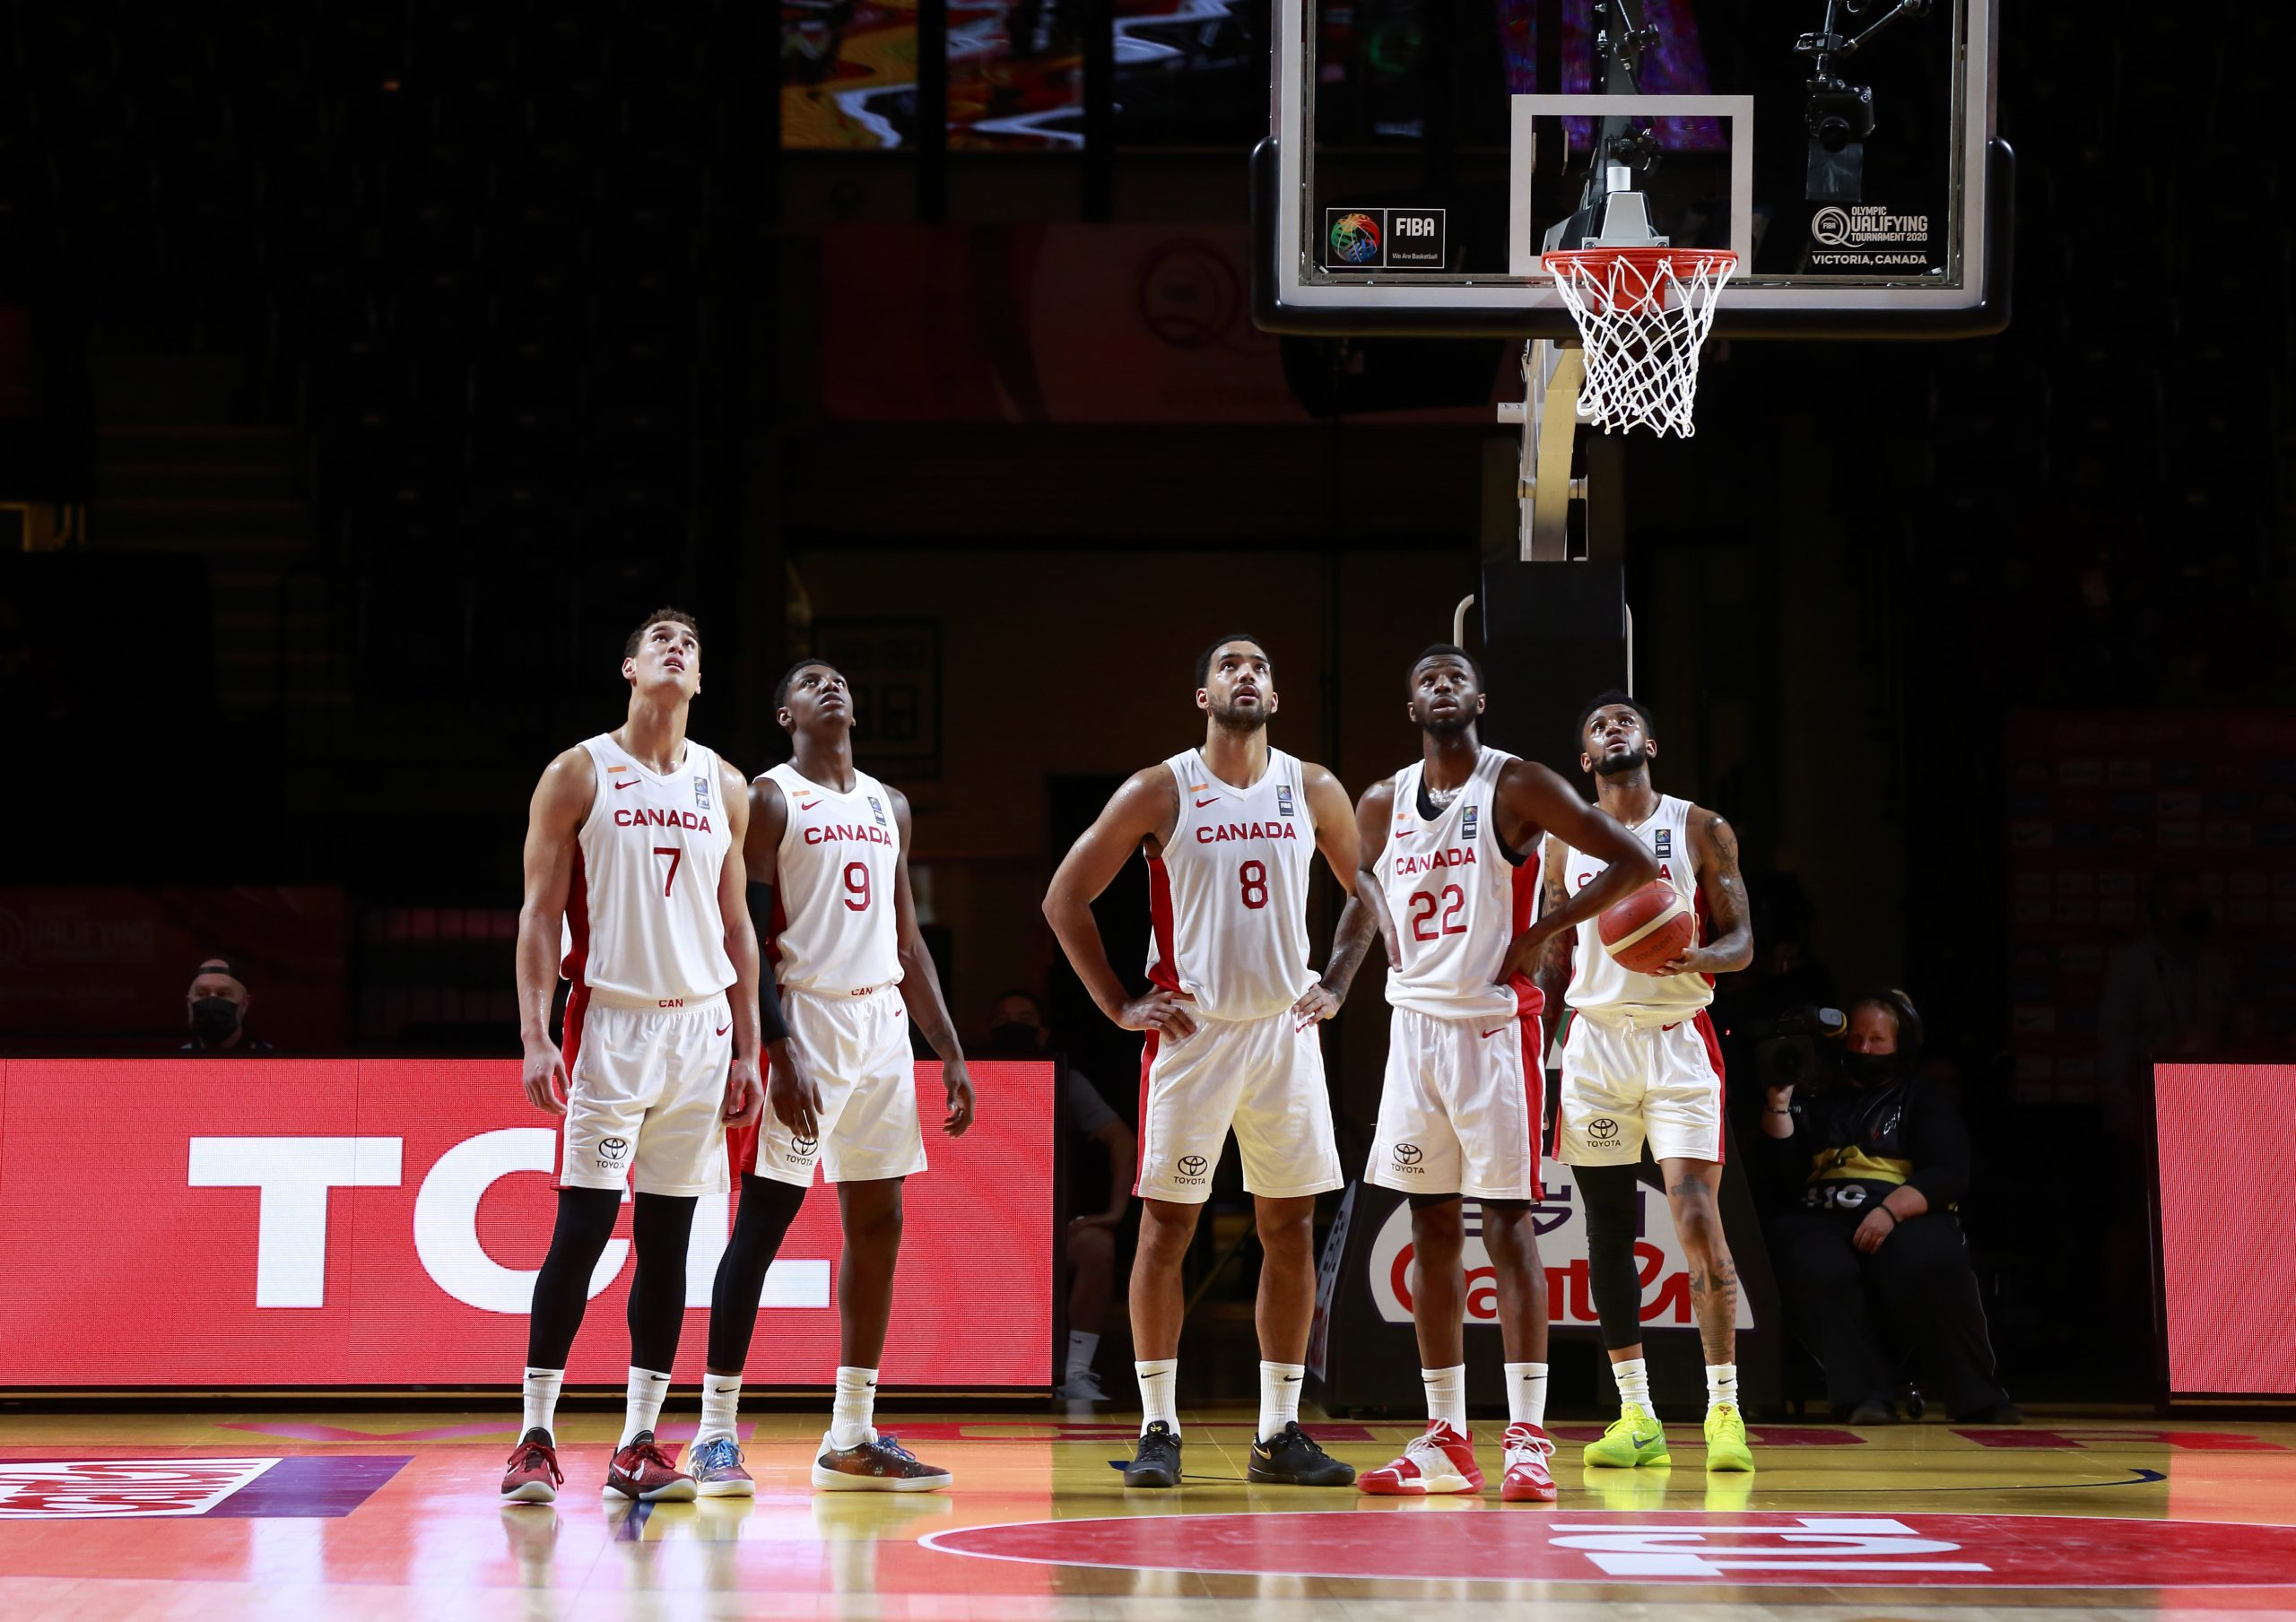 Canada's hopes for the Tokyo Olympics end in heartbreaking 103-101 OT loss to the Czech Republic